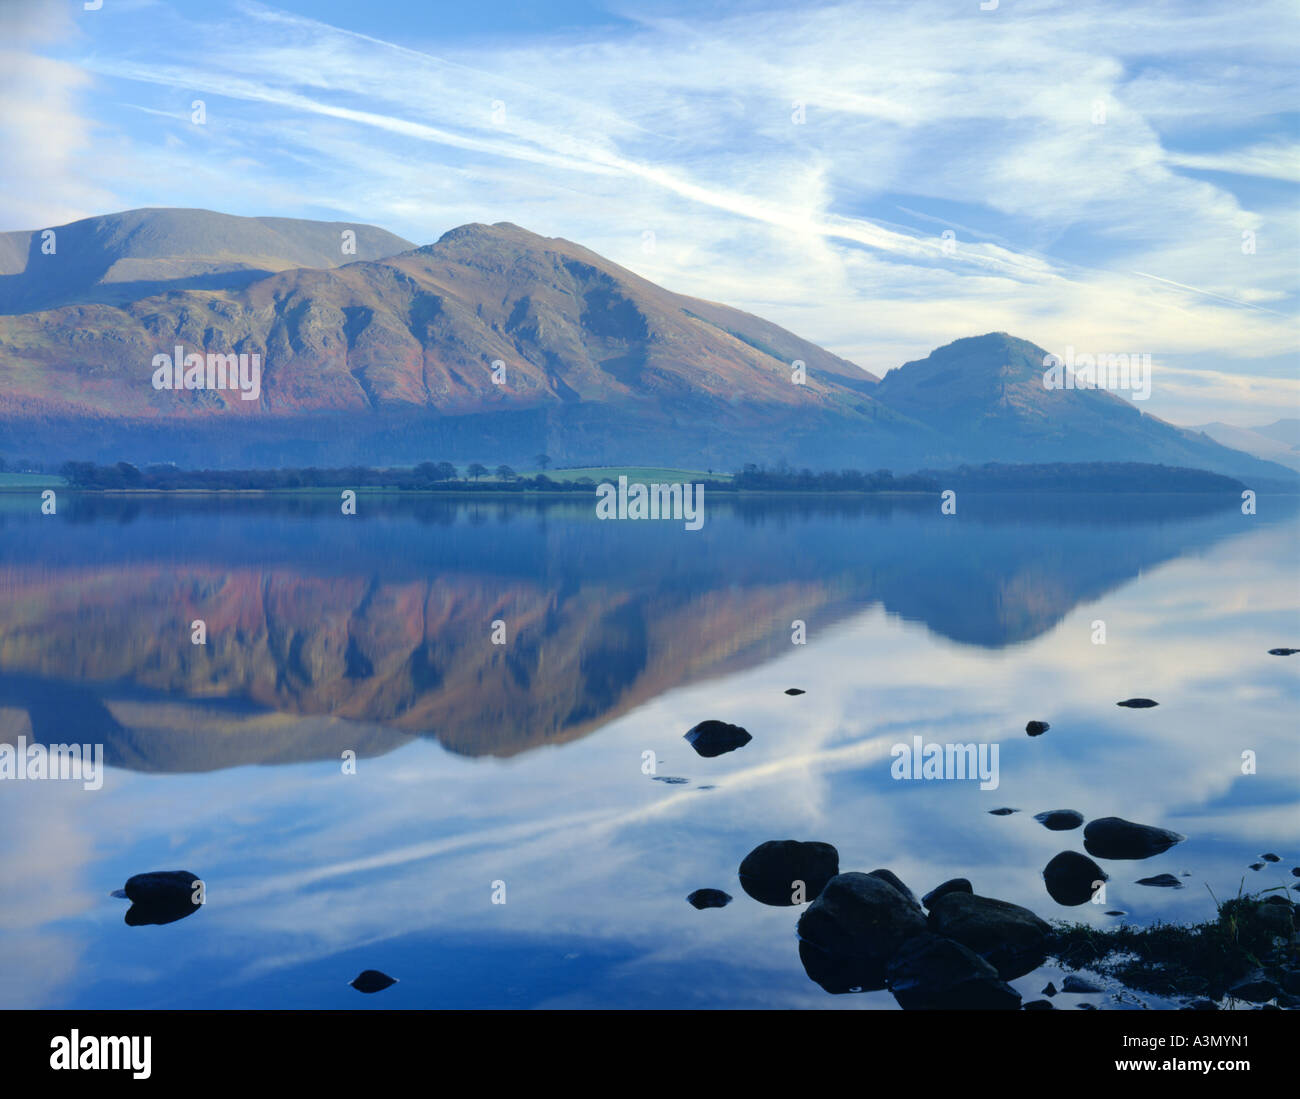 Calm view of the still waters of Bassenthwaite Lake with Skiddaw and Ullock Pike Lake District National Park, Cumbria, England. - Stock Image